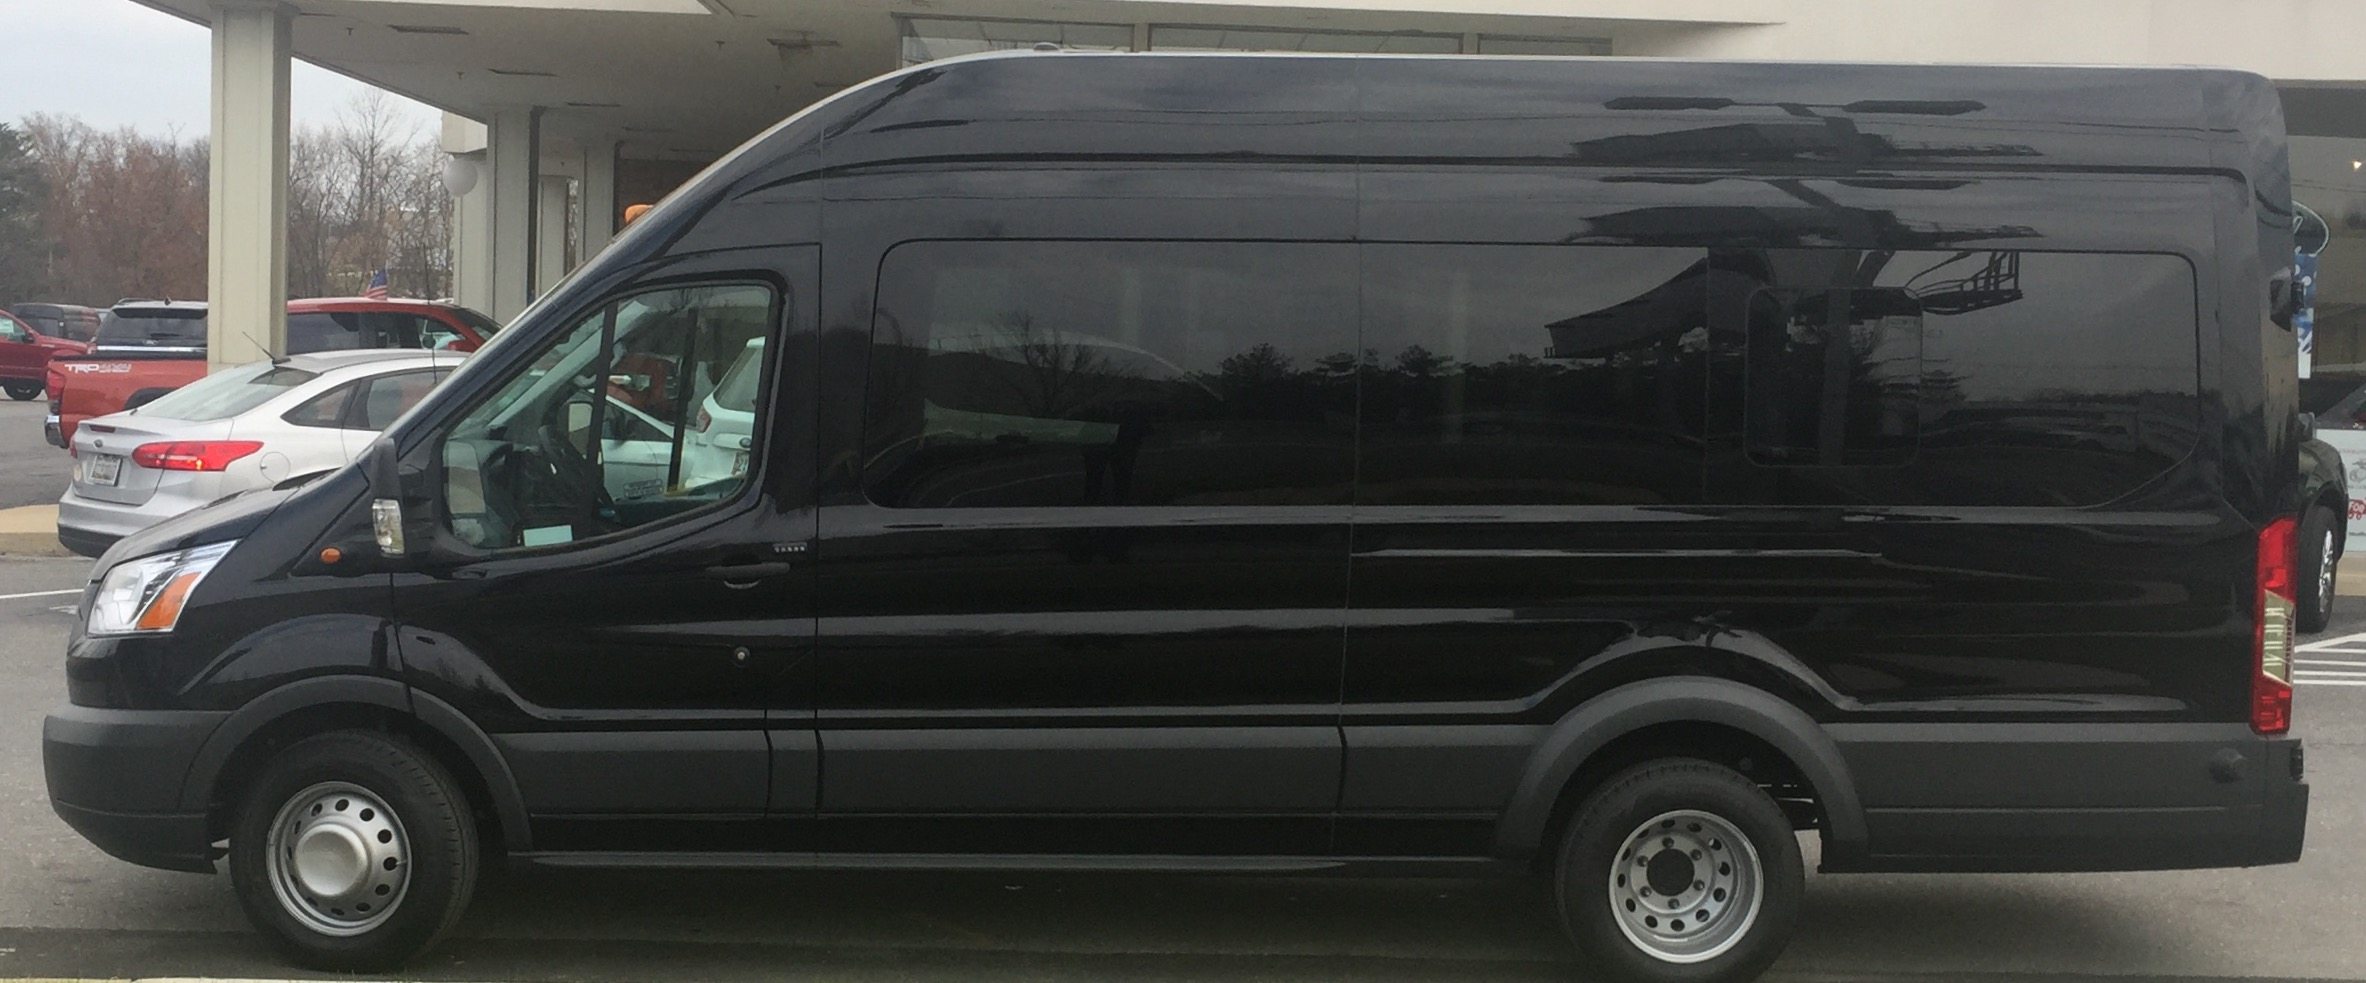 14 Passenger Hightop Van/Luggage